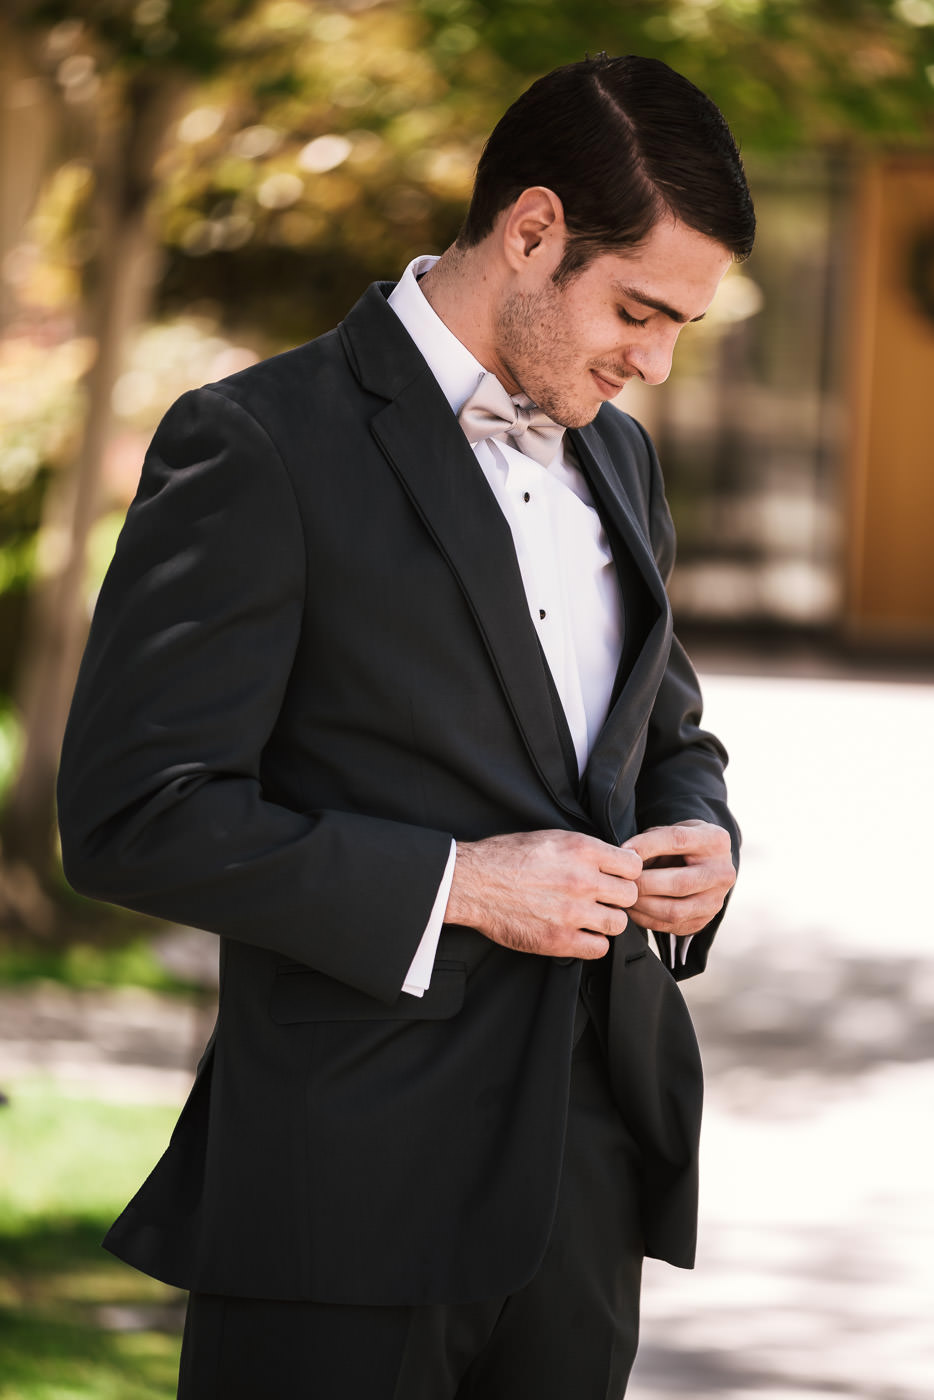 Groom buttons his jacket as he prepares to head to the chapel.